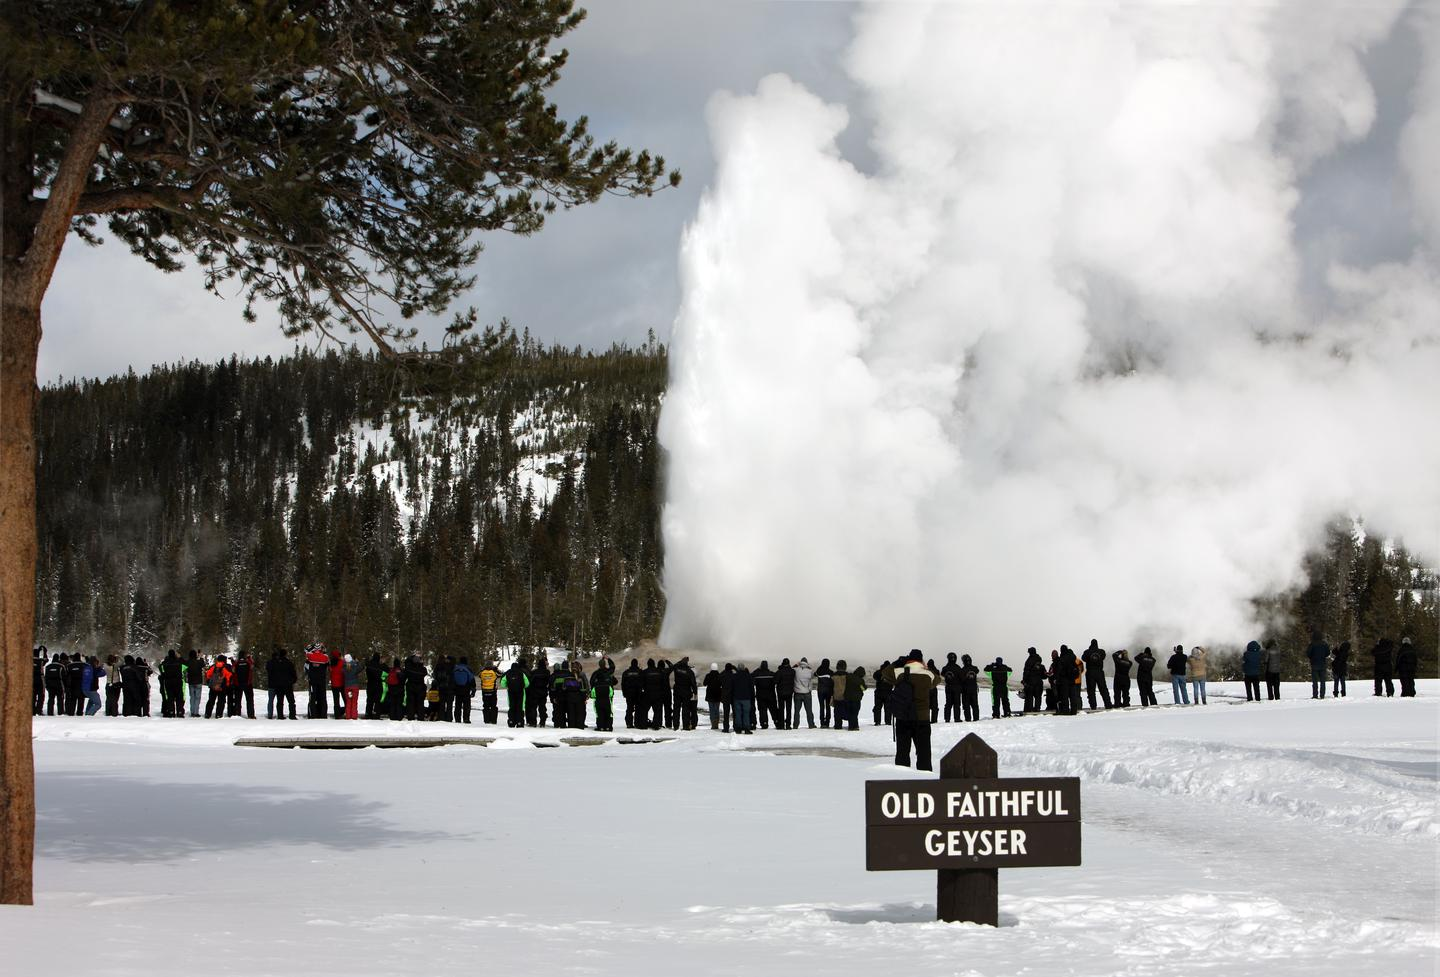 Old Faithful Geyser in winterWinter is a magical time to watch Old Faithful Geyser erupt